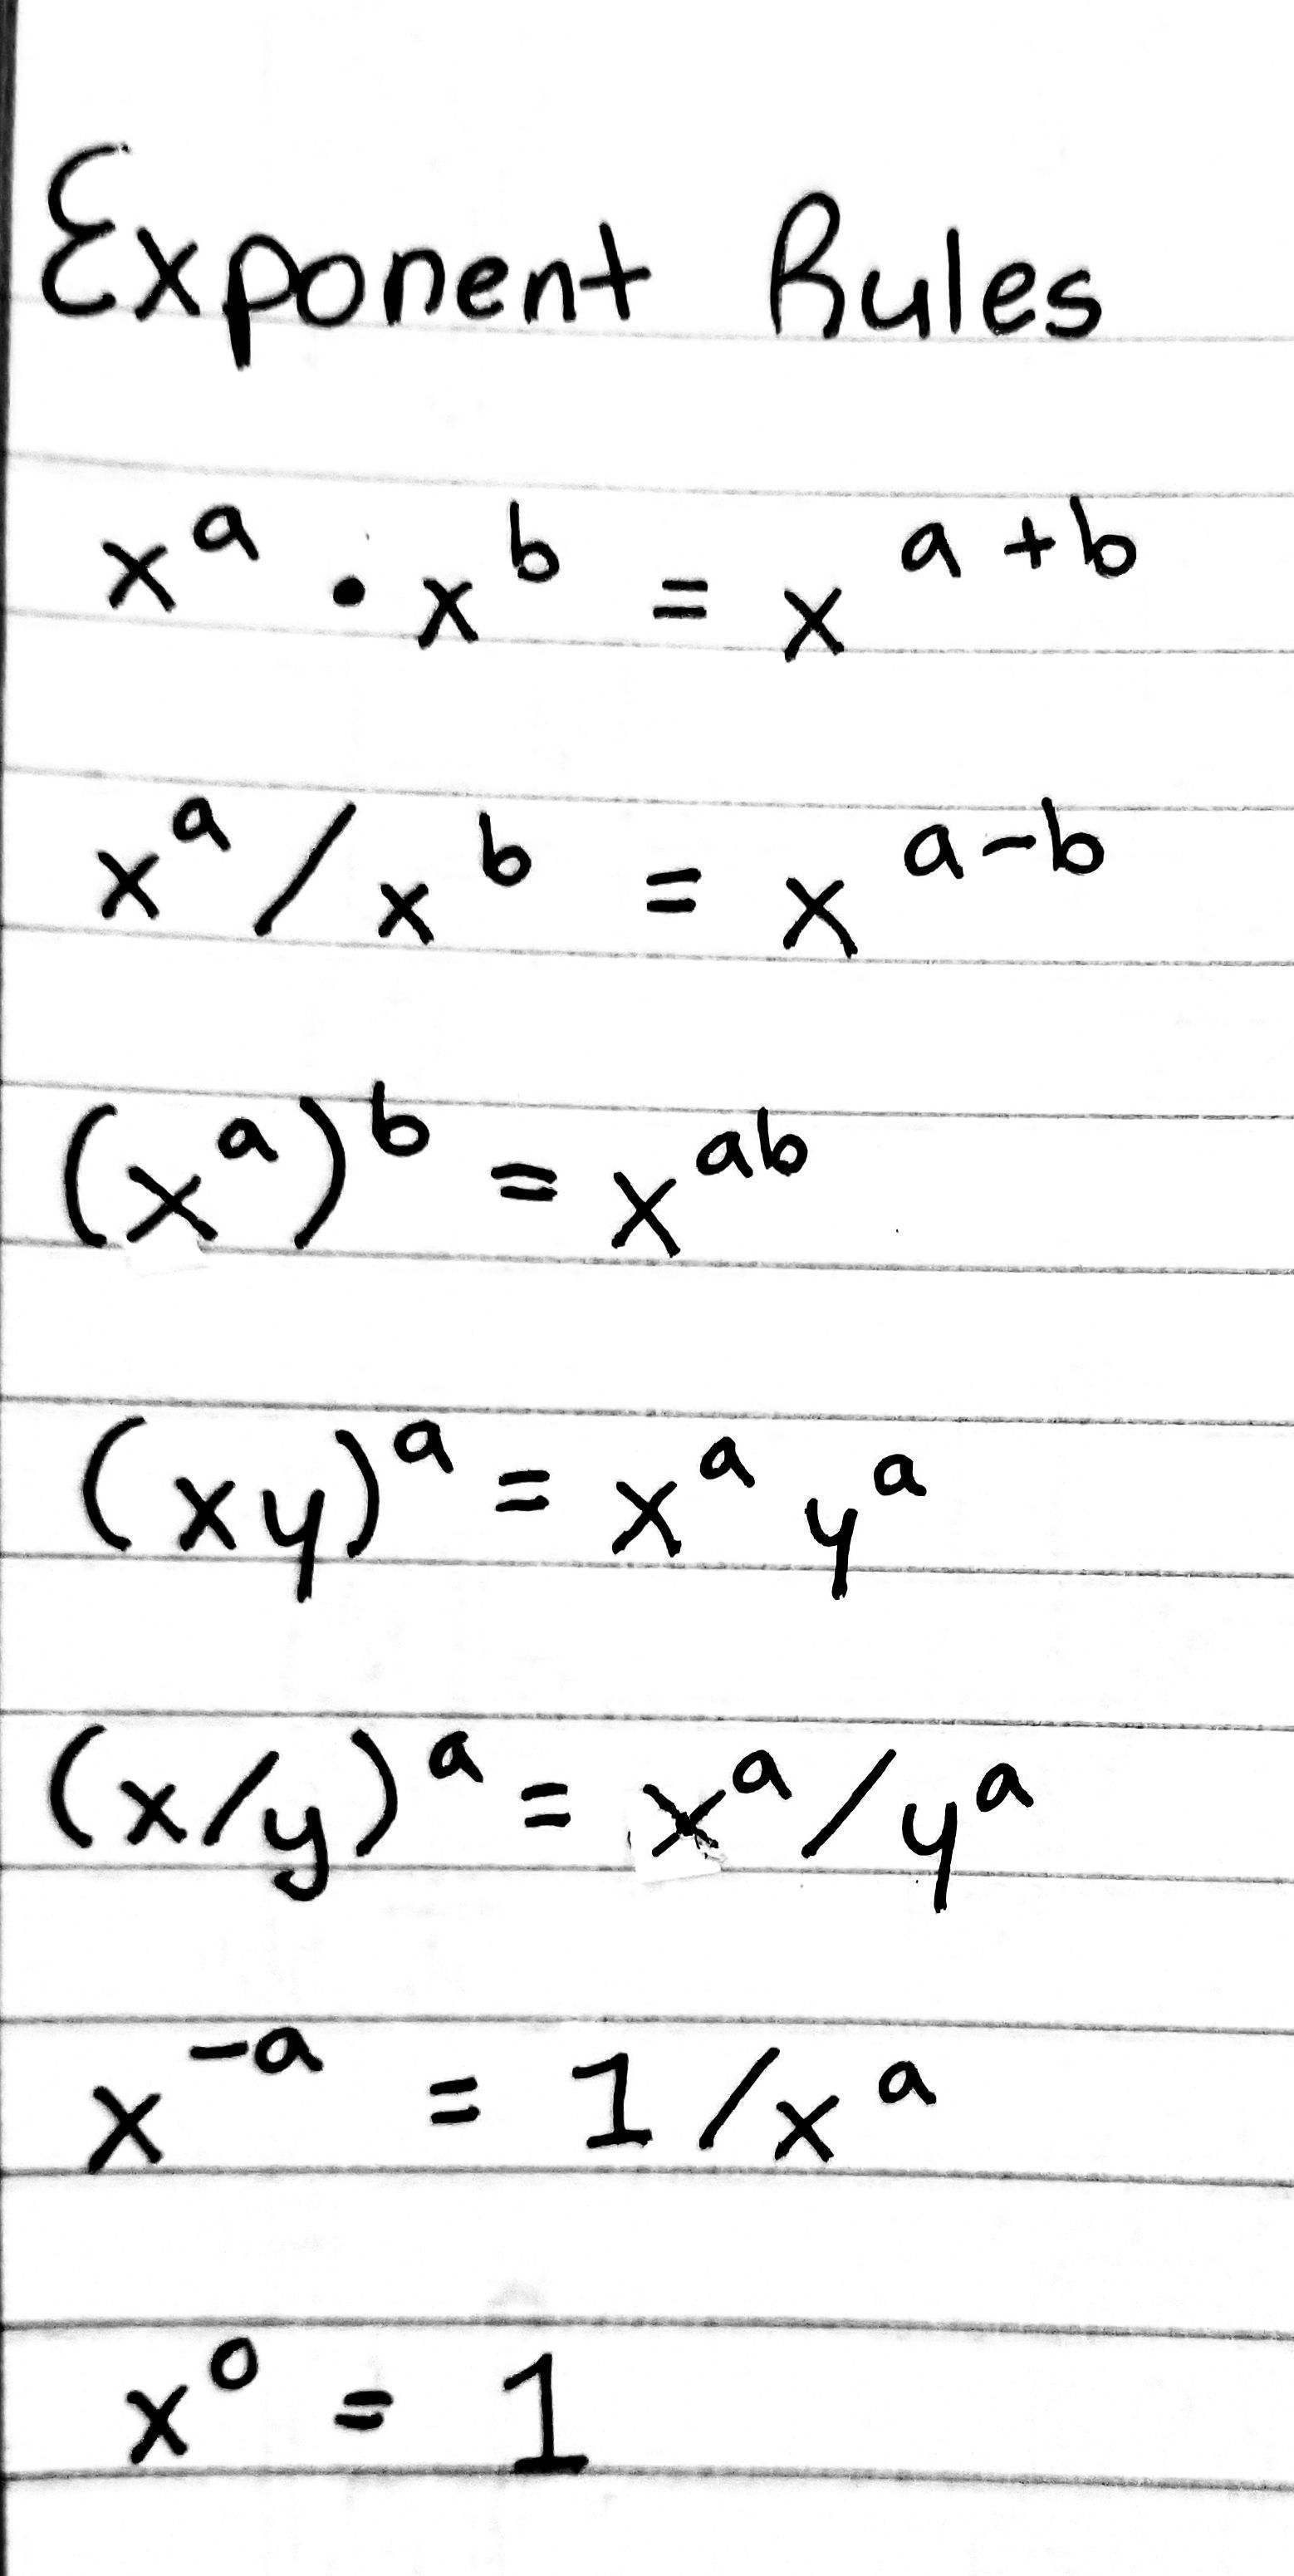 Basic Exponent Rules Worksheet Printable Worksheets Are A Precious Classroom Tool They Not Basically Complement In 2021 Exponent Rules Exponents Exponent Rule Notes [ 3101 x 1558 Pixel ]